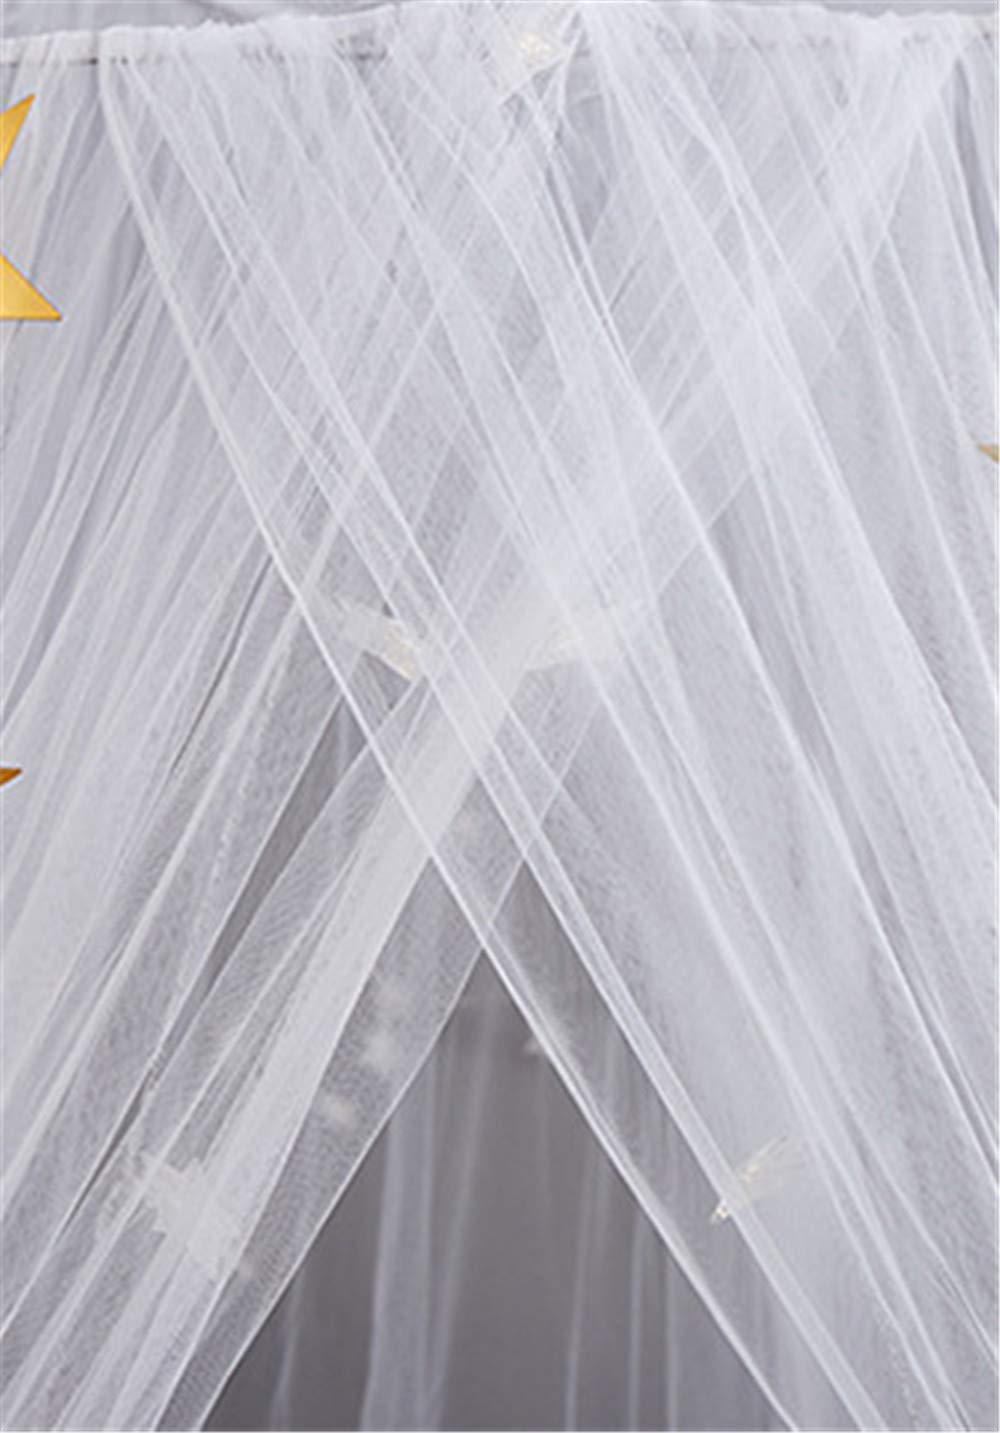 EVDAY Romantic Princess Style White Bed Canopy with Lights for Girls Kids Play Tent Hanging Mosquito Net Curtain for Kids Room Decoration by EVDAY (Image #6)